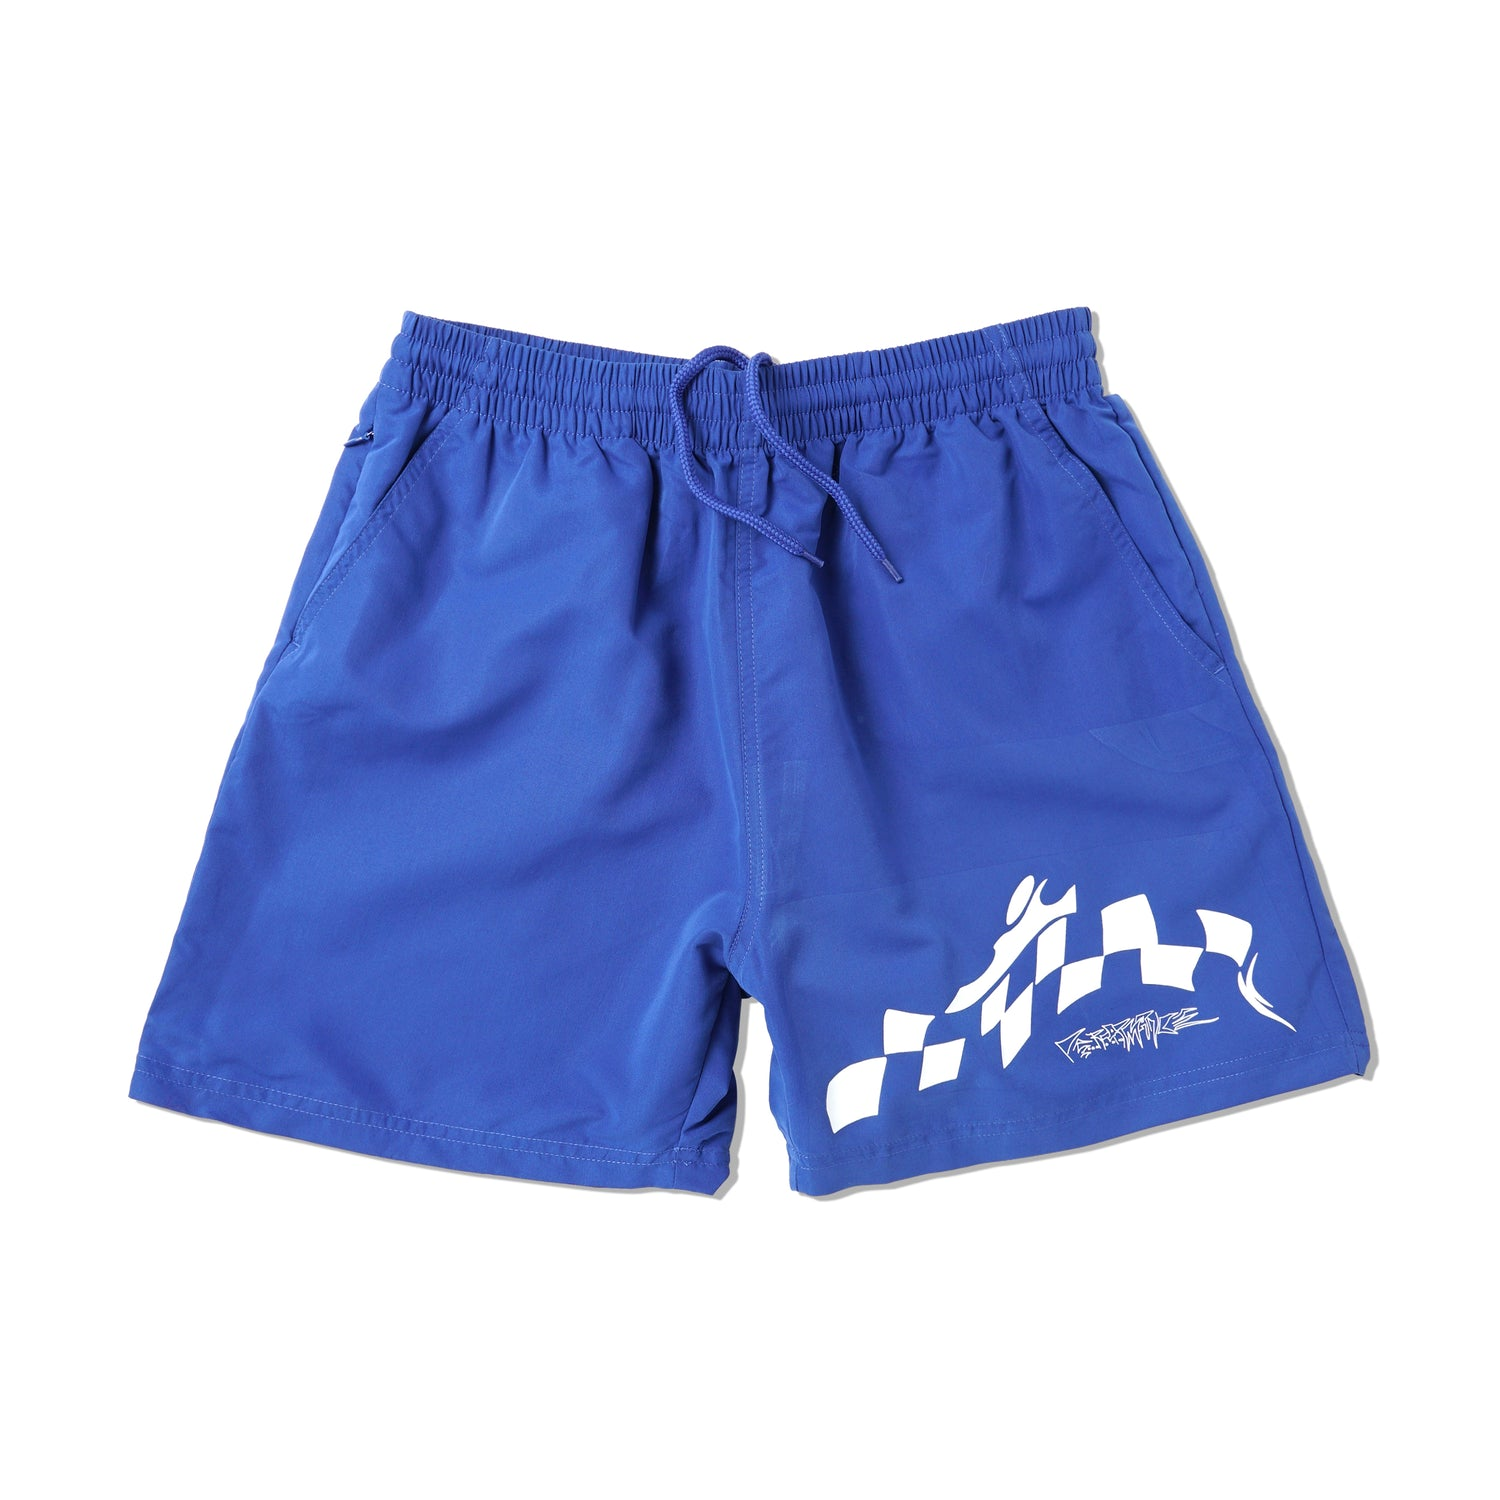 Warped Check Shorts, Royal Blue